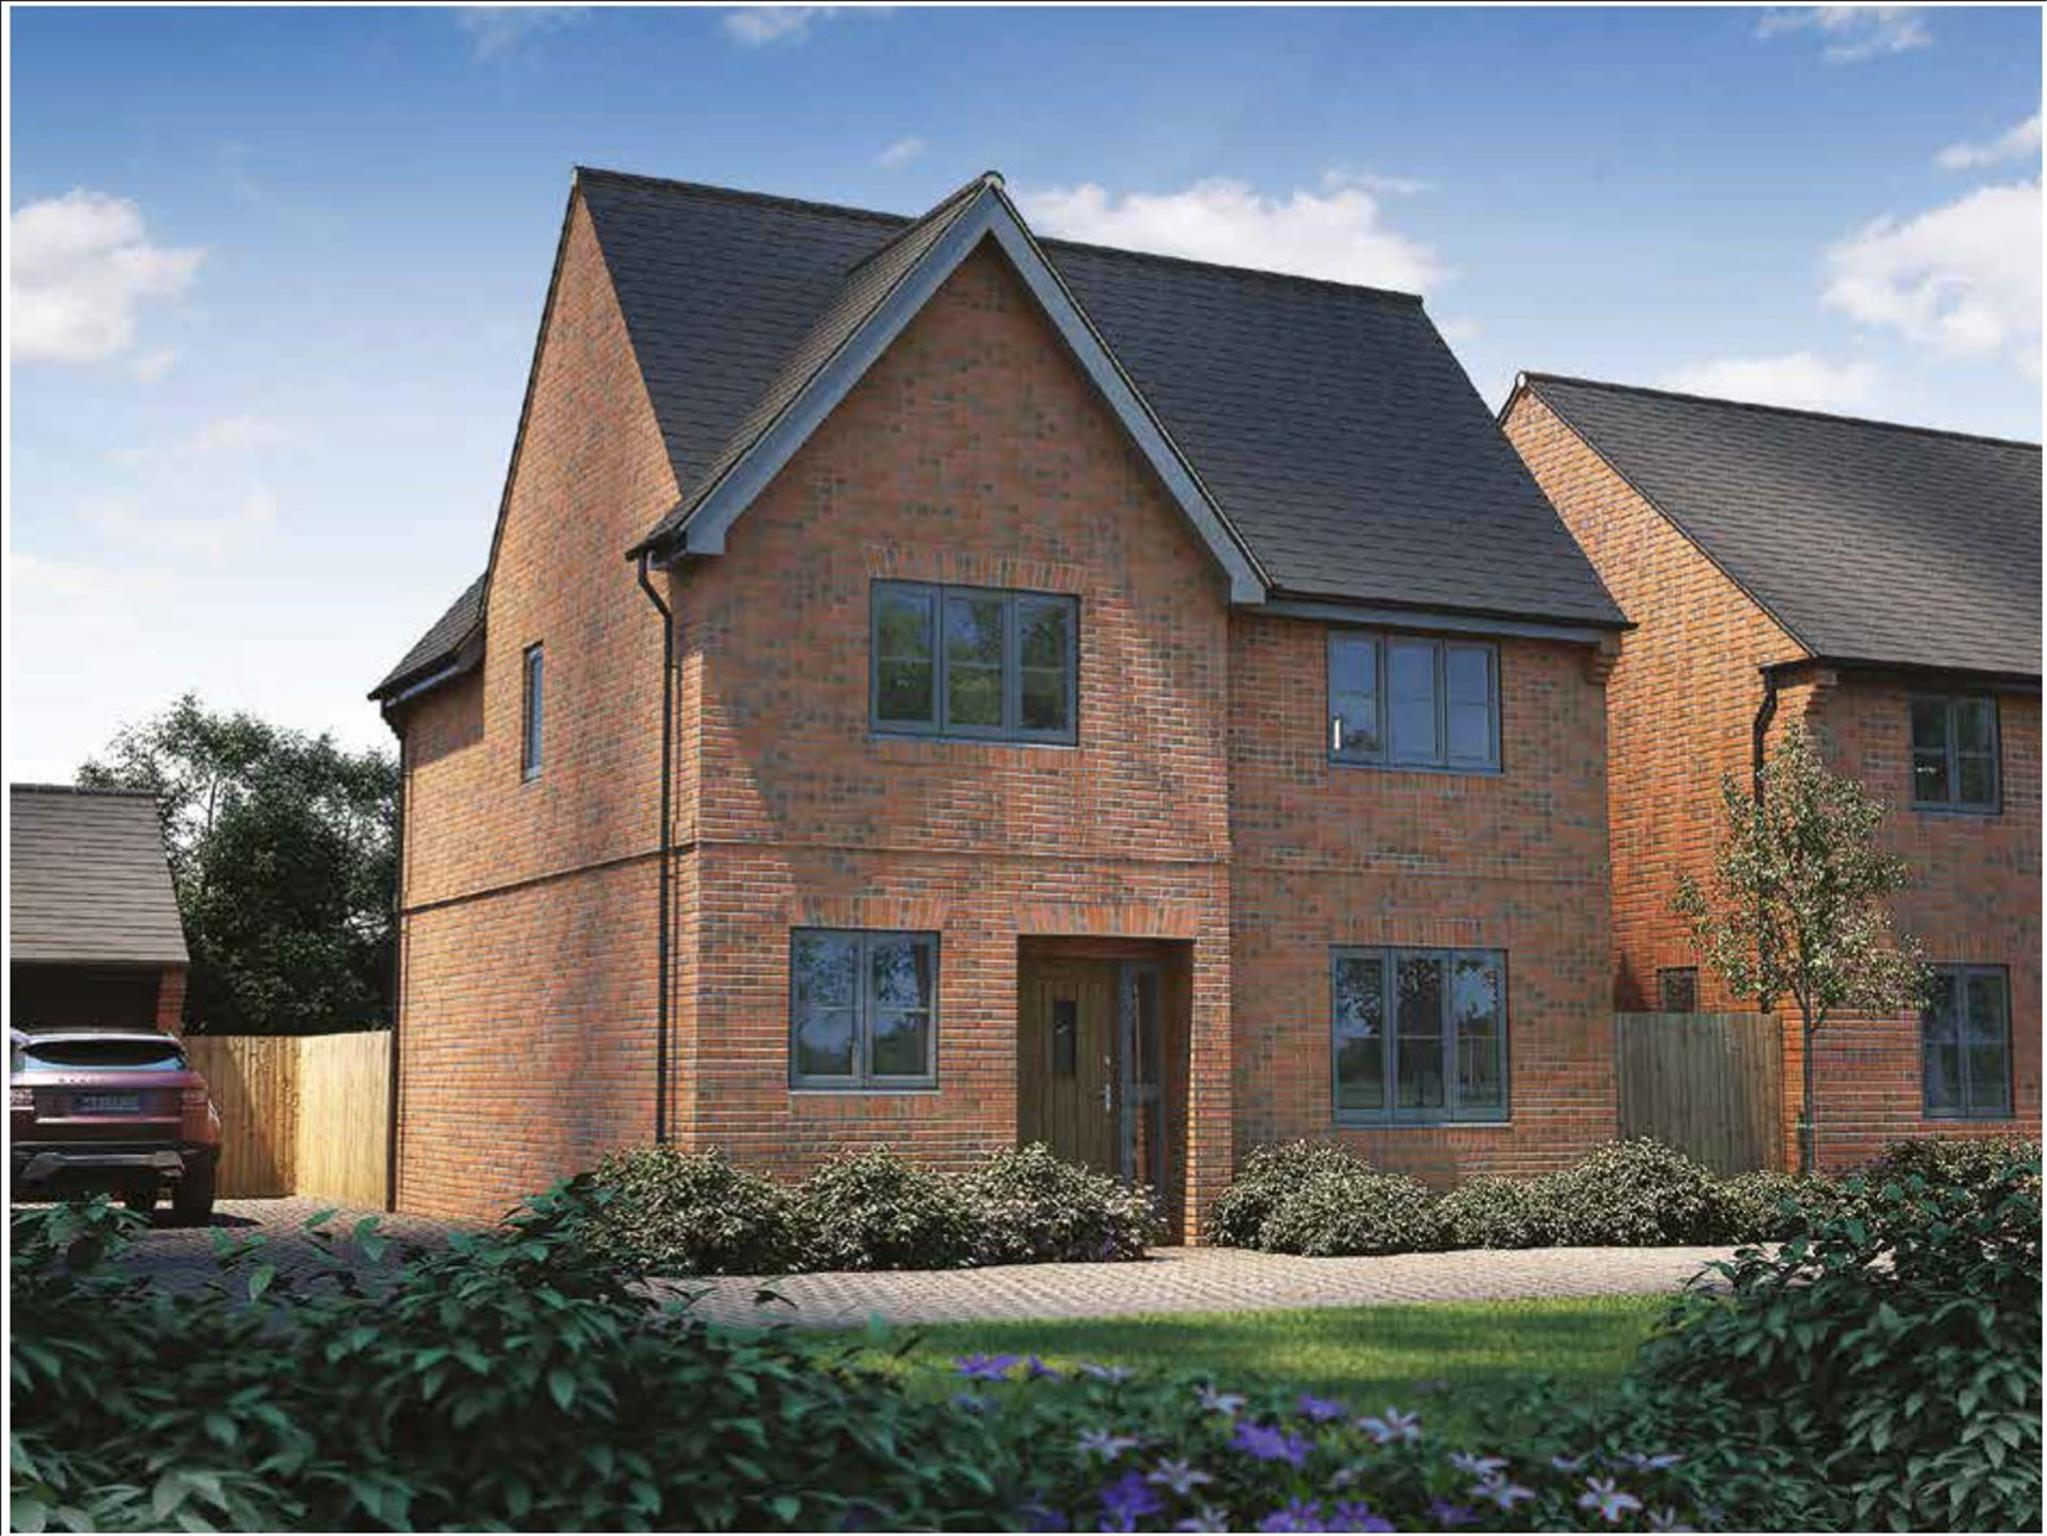 Plot 5, Birch House, Chartist Edge, Staunton, Glos GL19